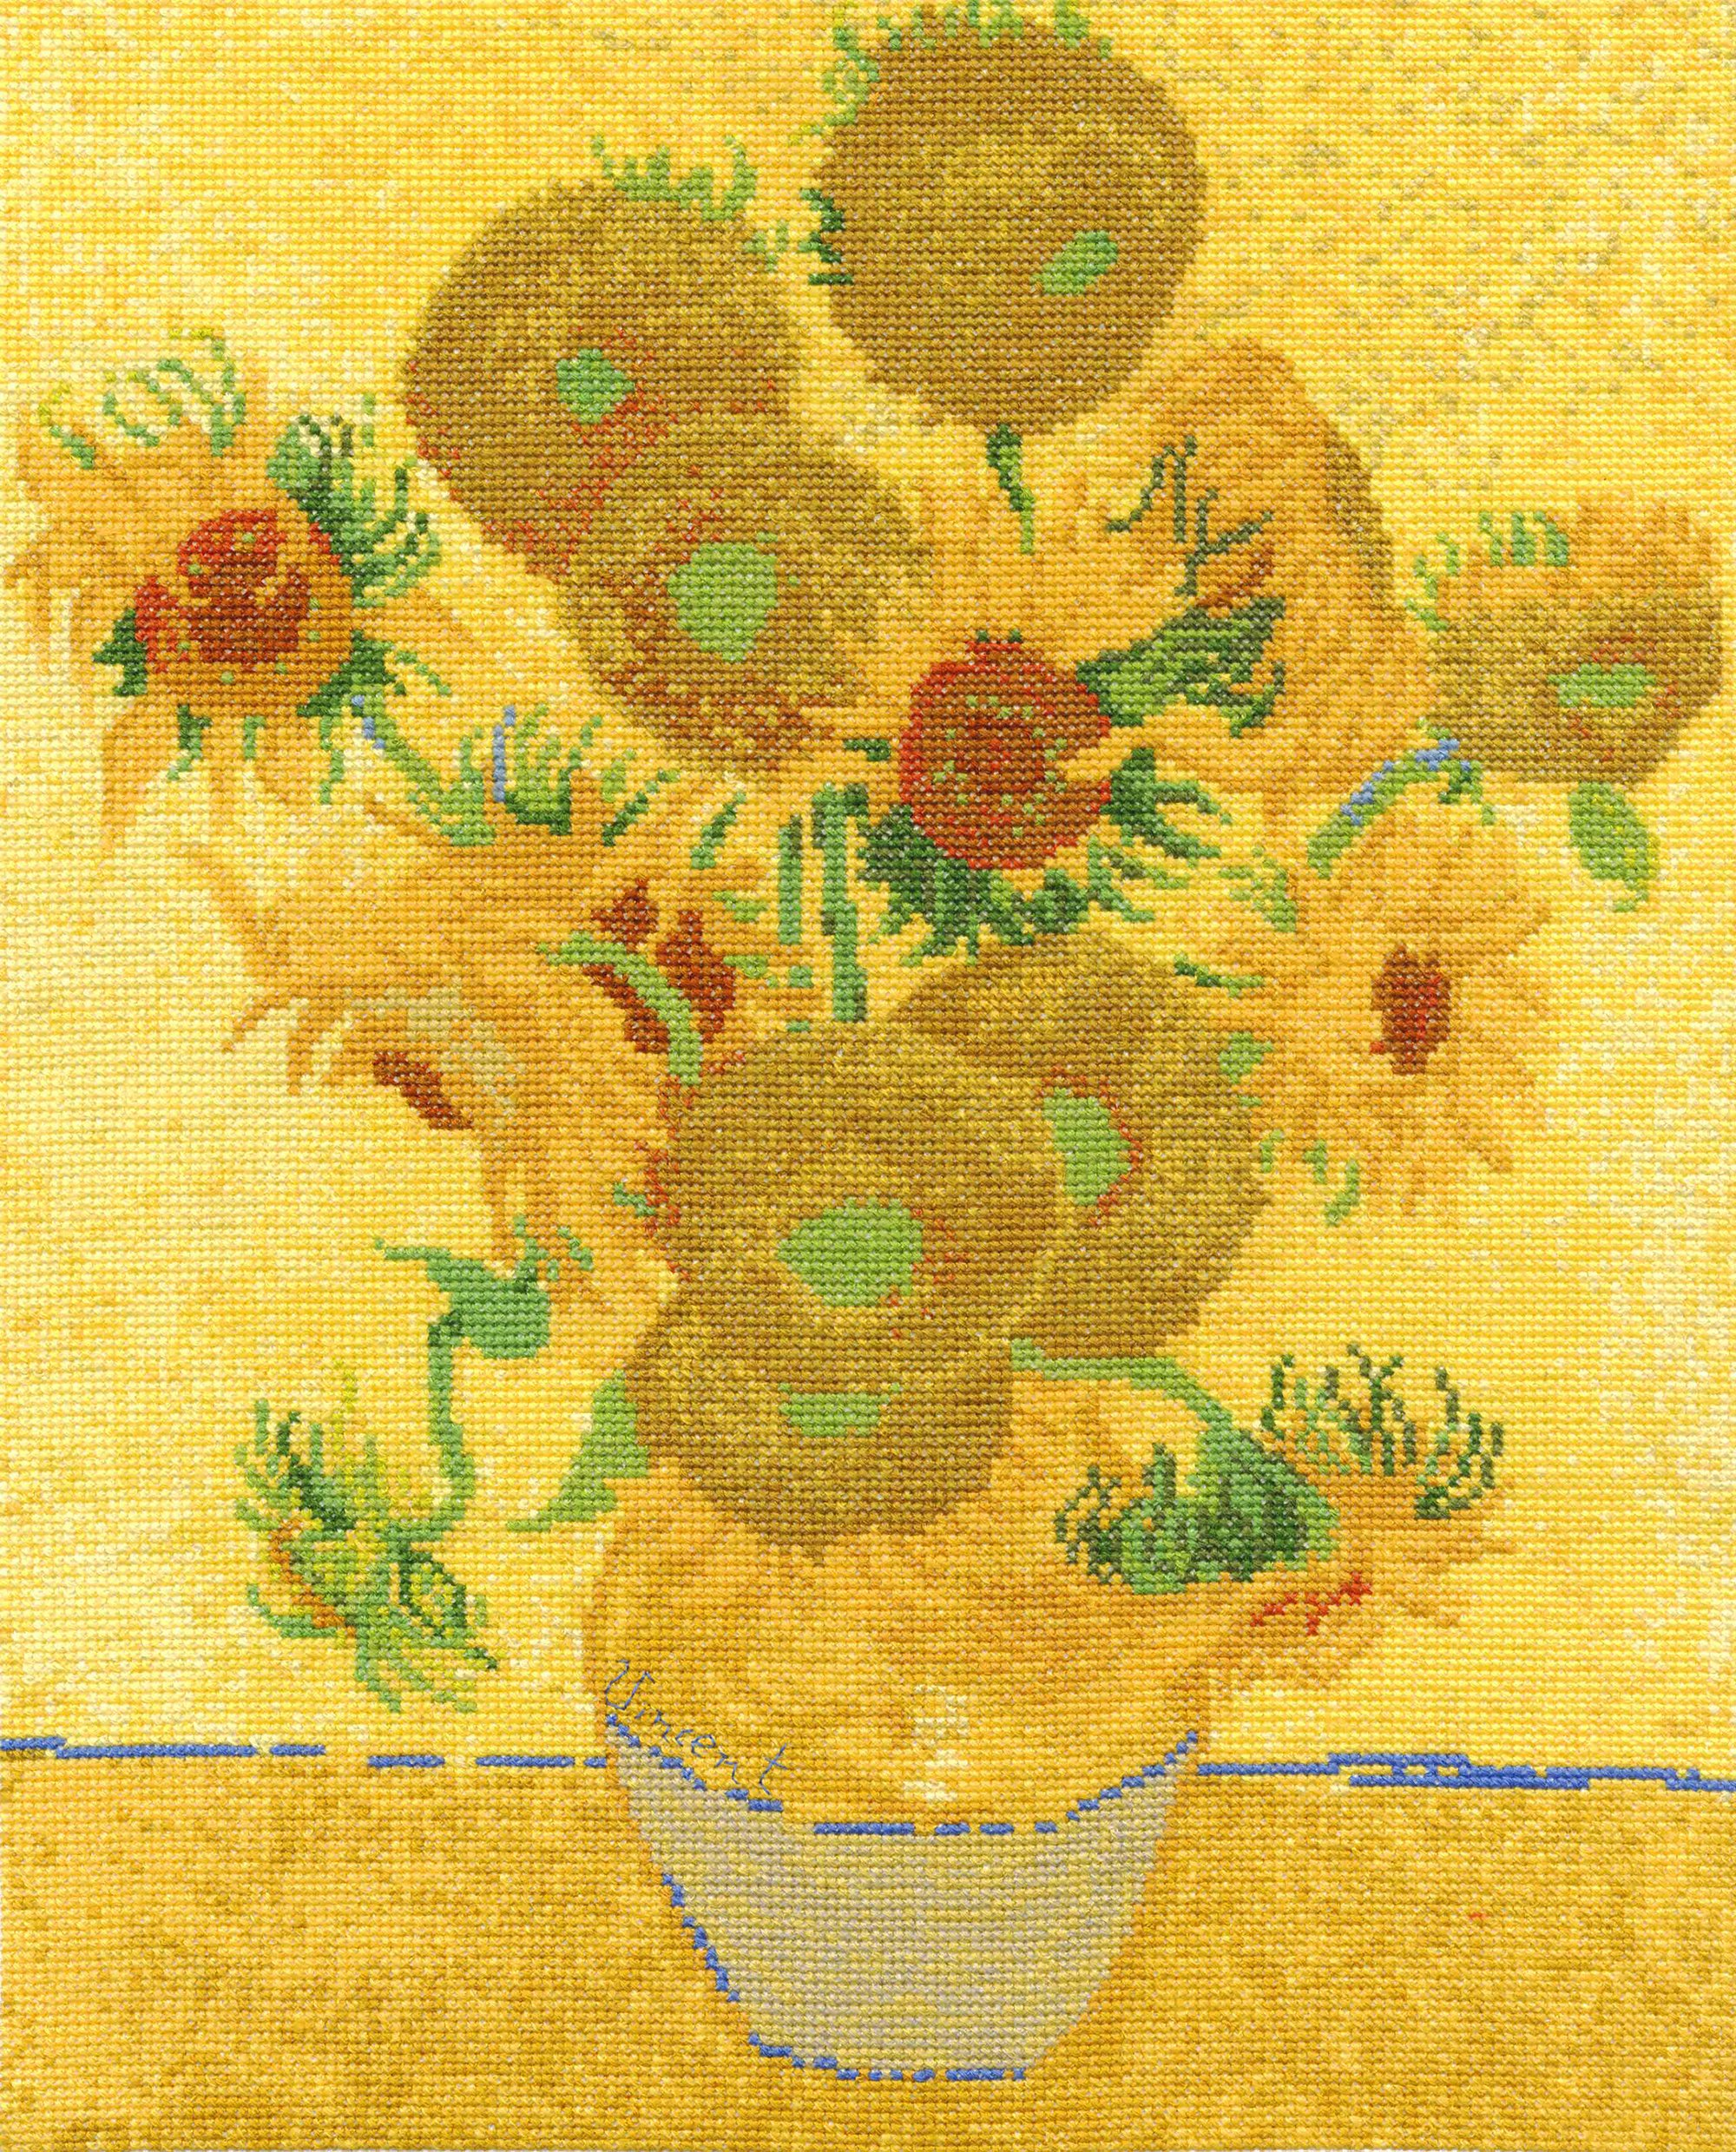 national-gallery-van-gogh-sunflowers-cross-stitch-kit